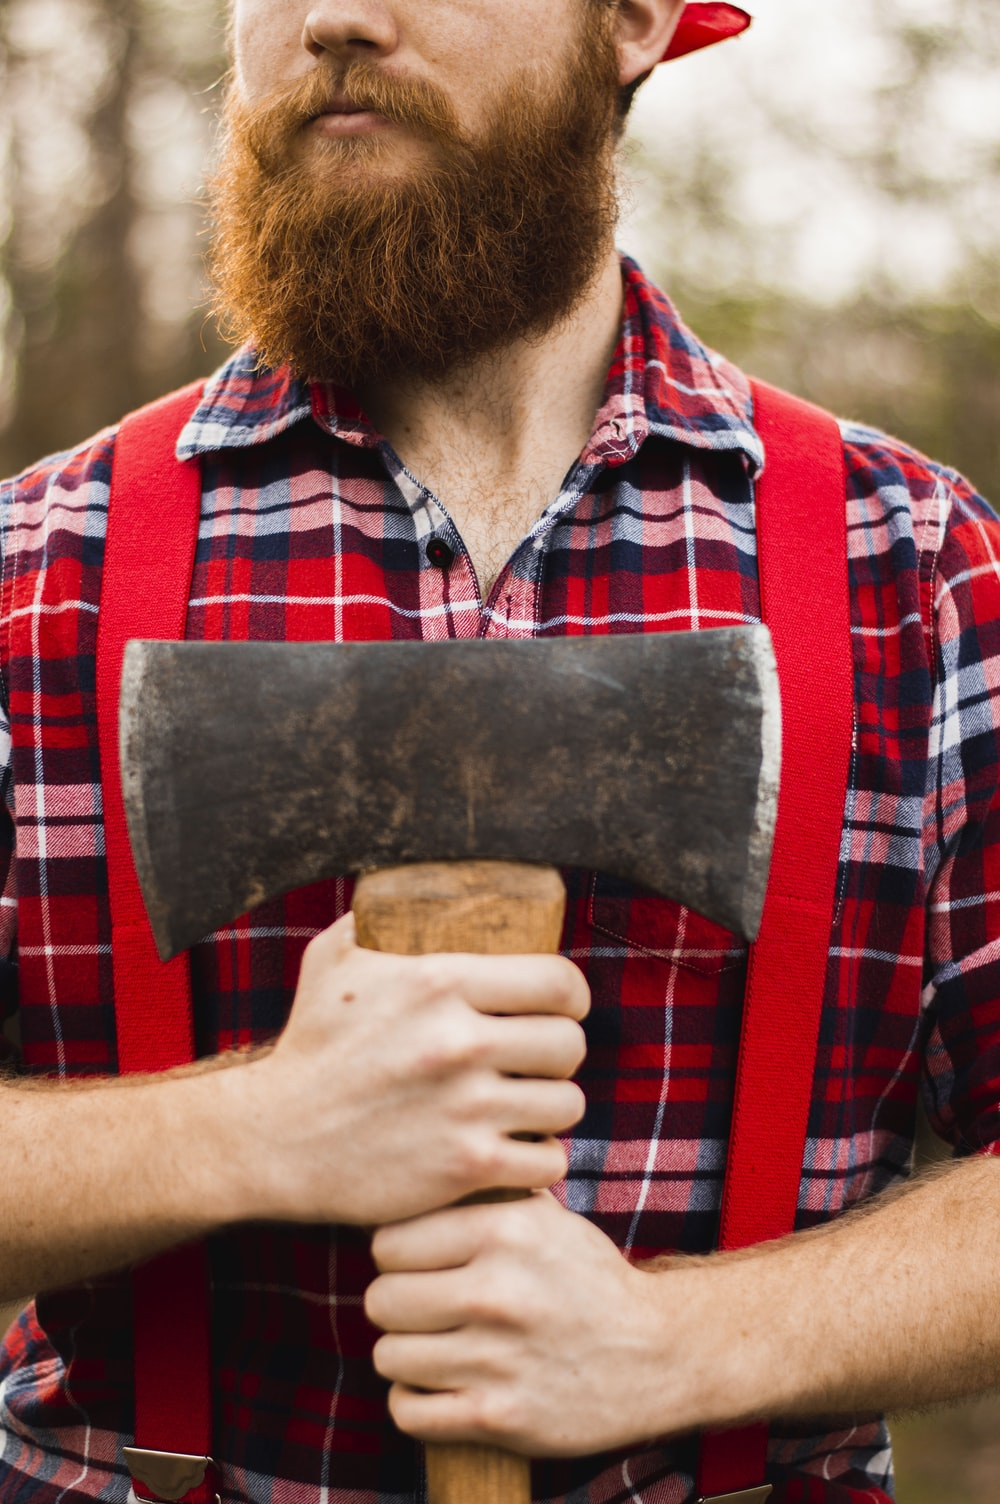 man holding red, blue, and white plaid shirt holding ax